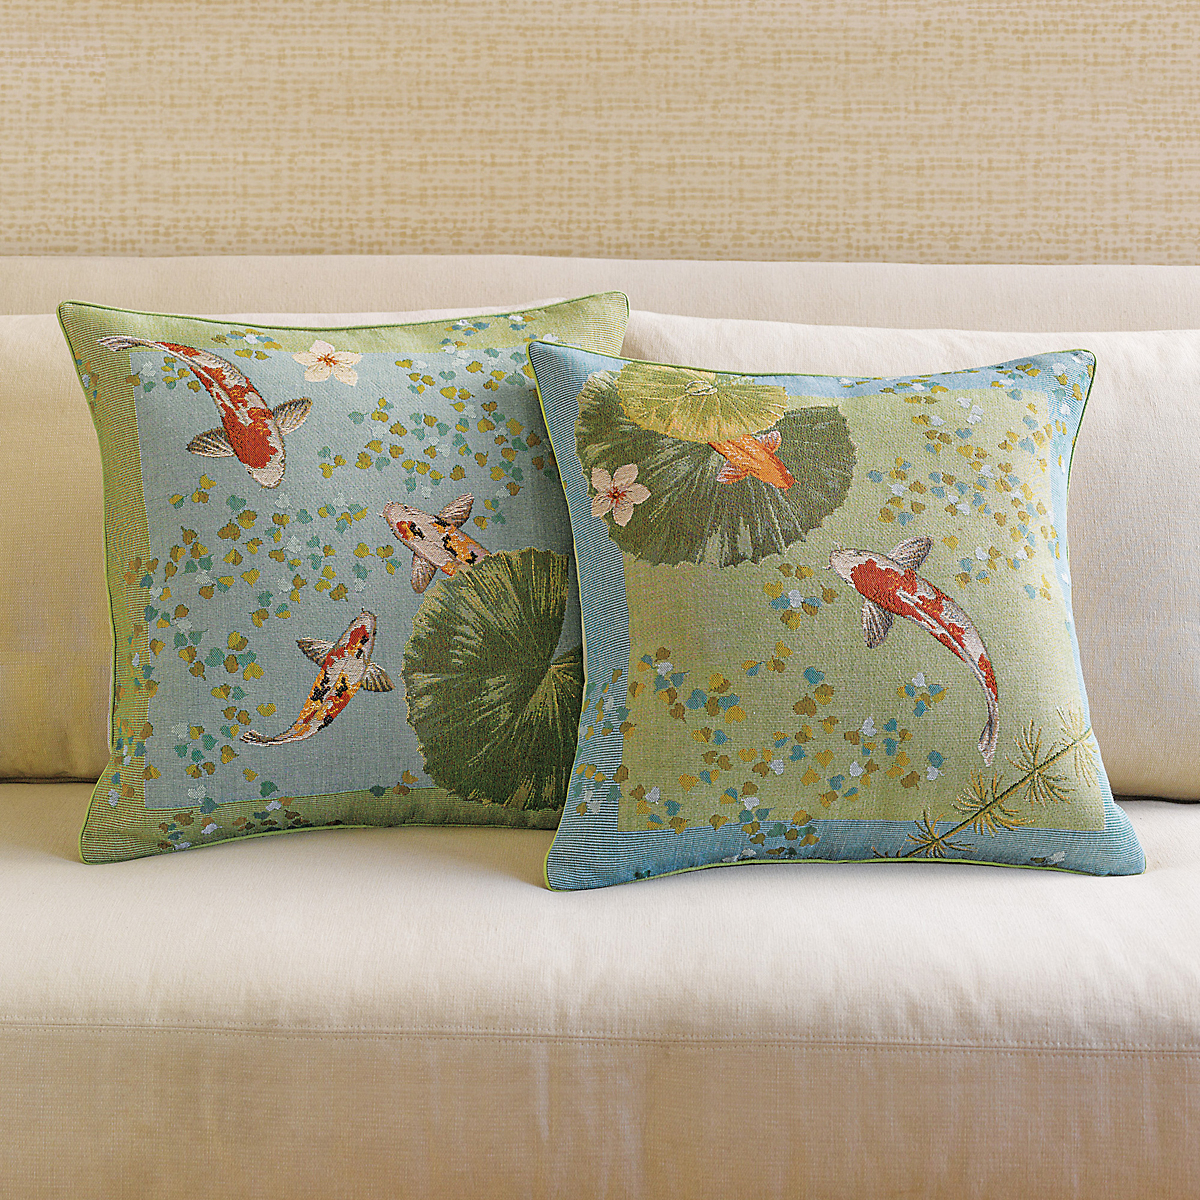 Koi pillows gump 39 s for Koi fish pillow